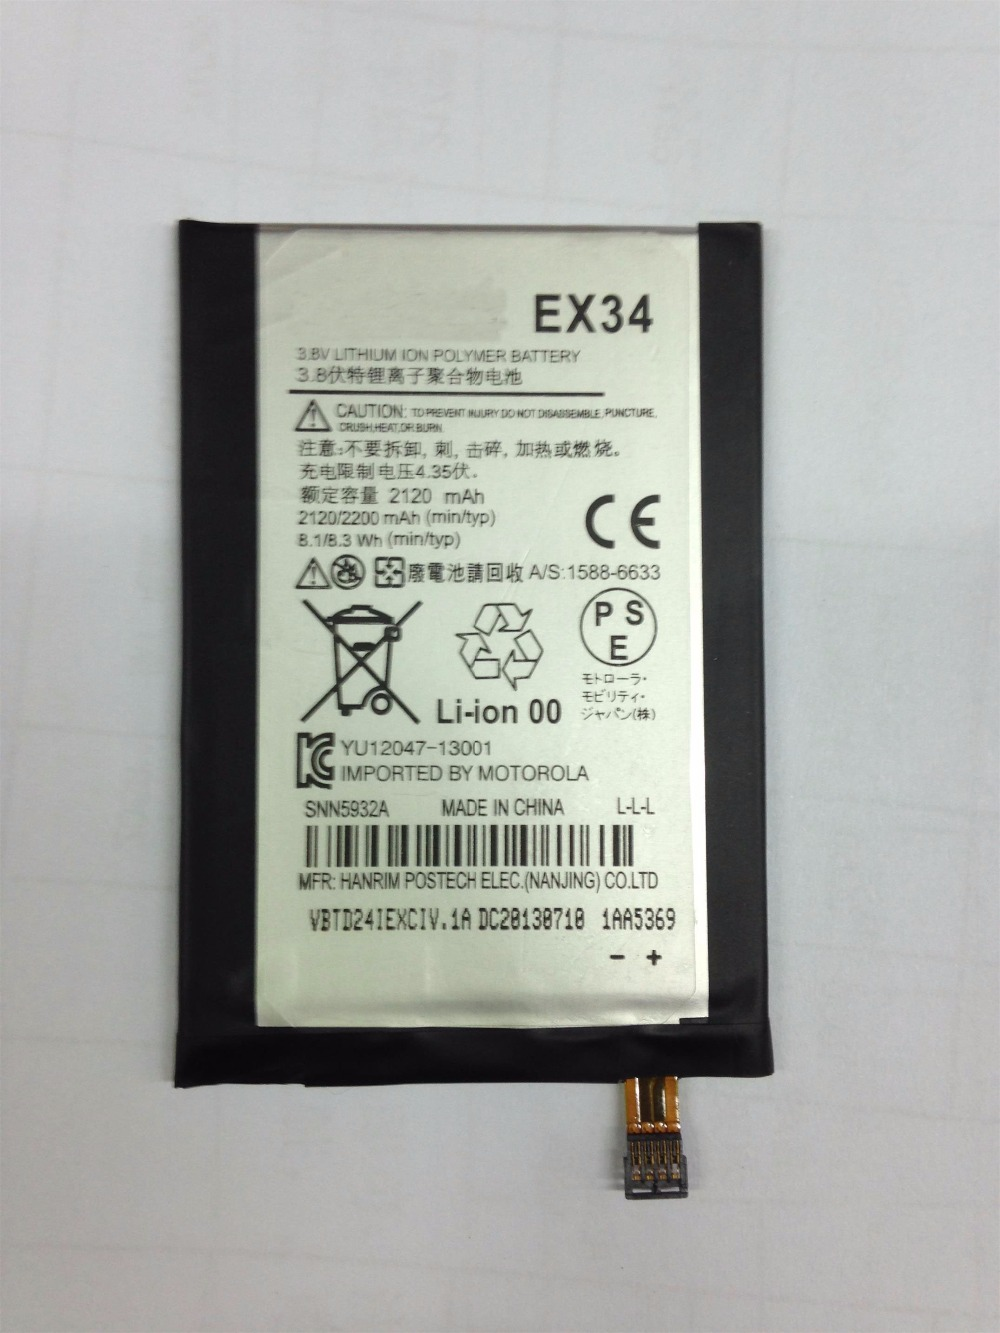 ALLCCX high quality mobile phone battery EX34 for Motorola X XT1058 XT1060 XT1052 XT1031 XT1033 XT1049 XT1053 XT1055